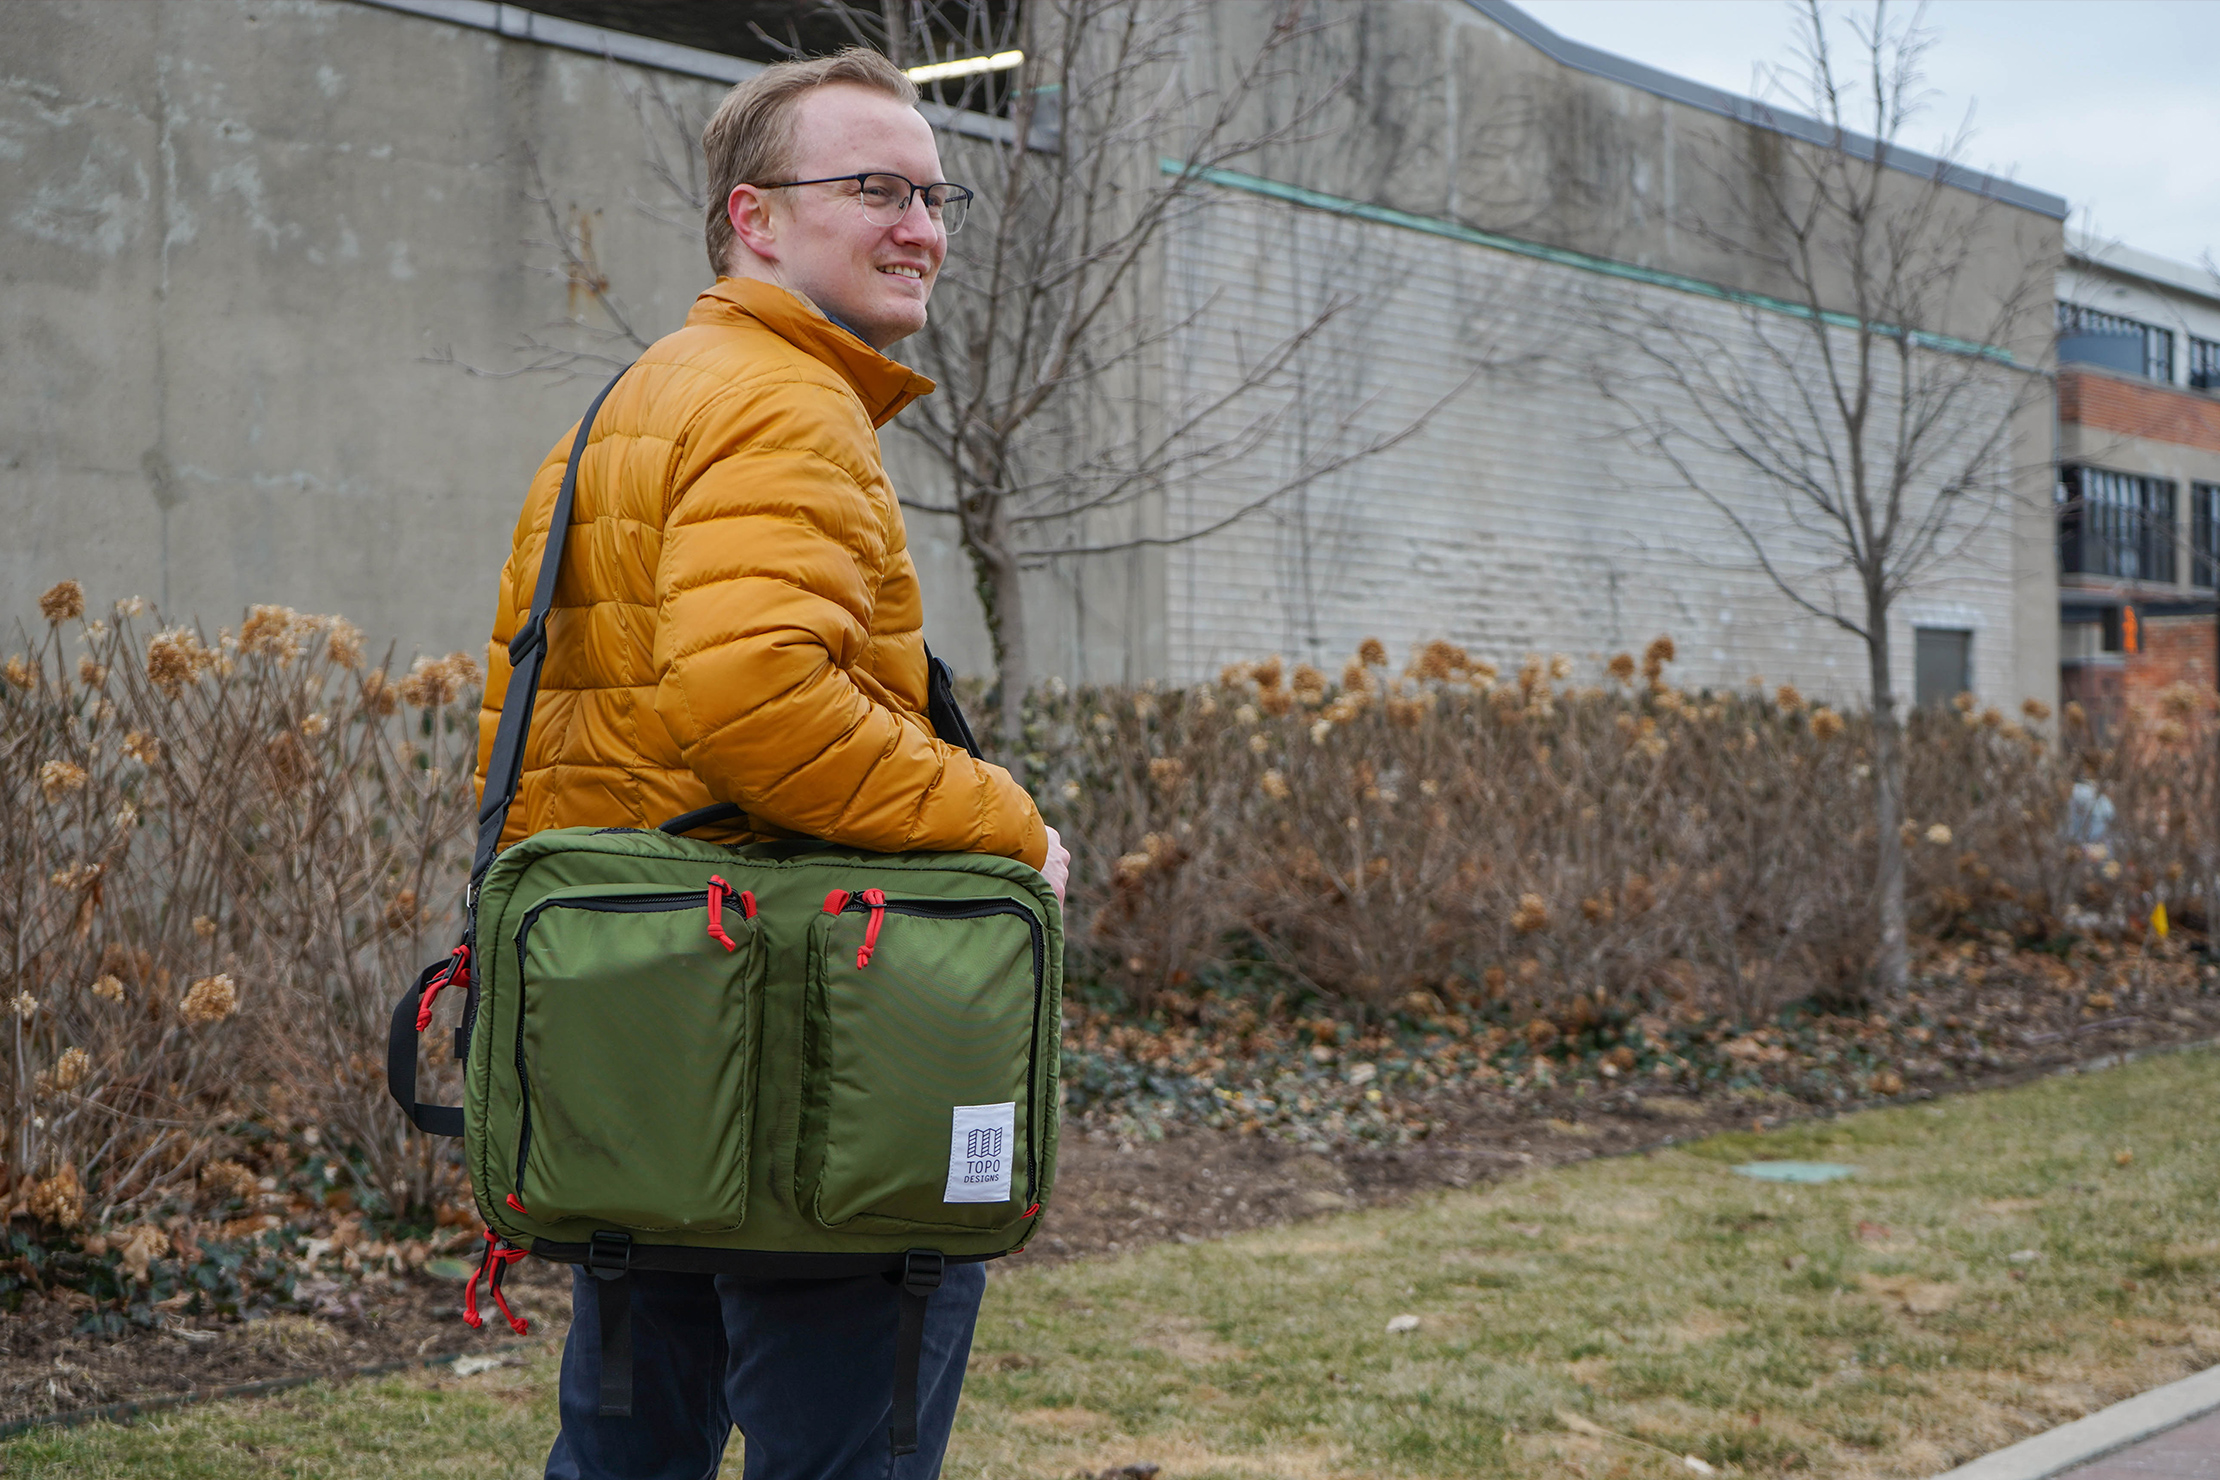 Topo Designs Global Briefcase 3-Day Messenger Carry